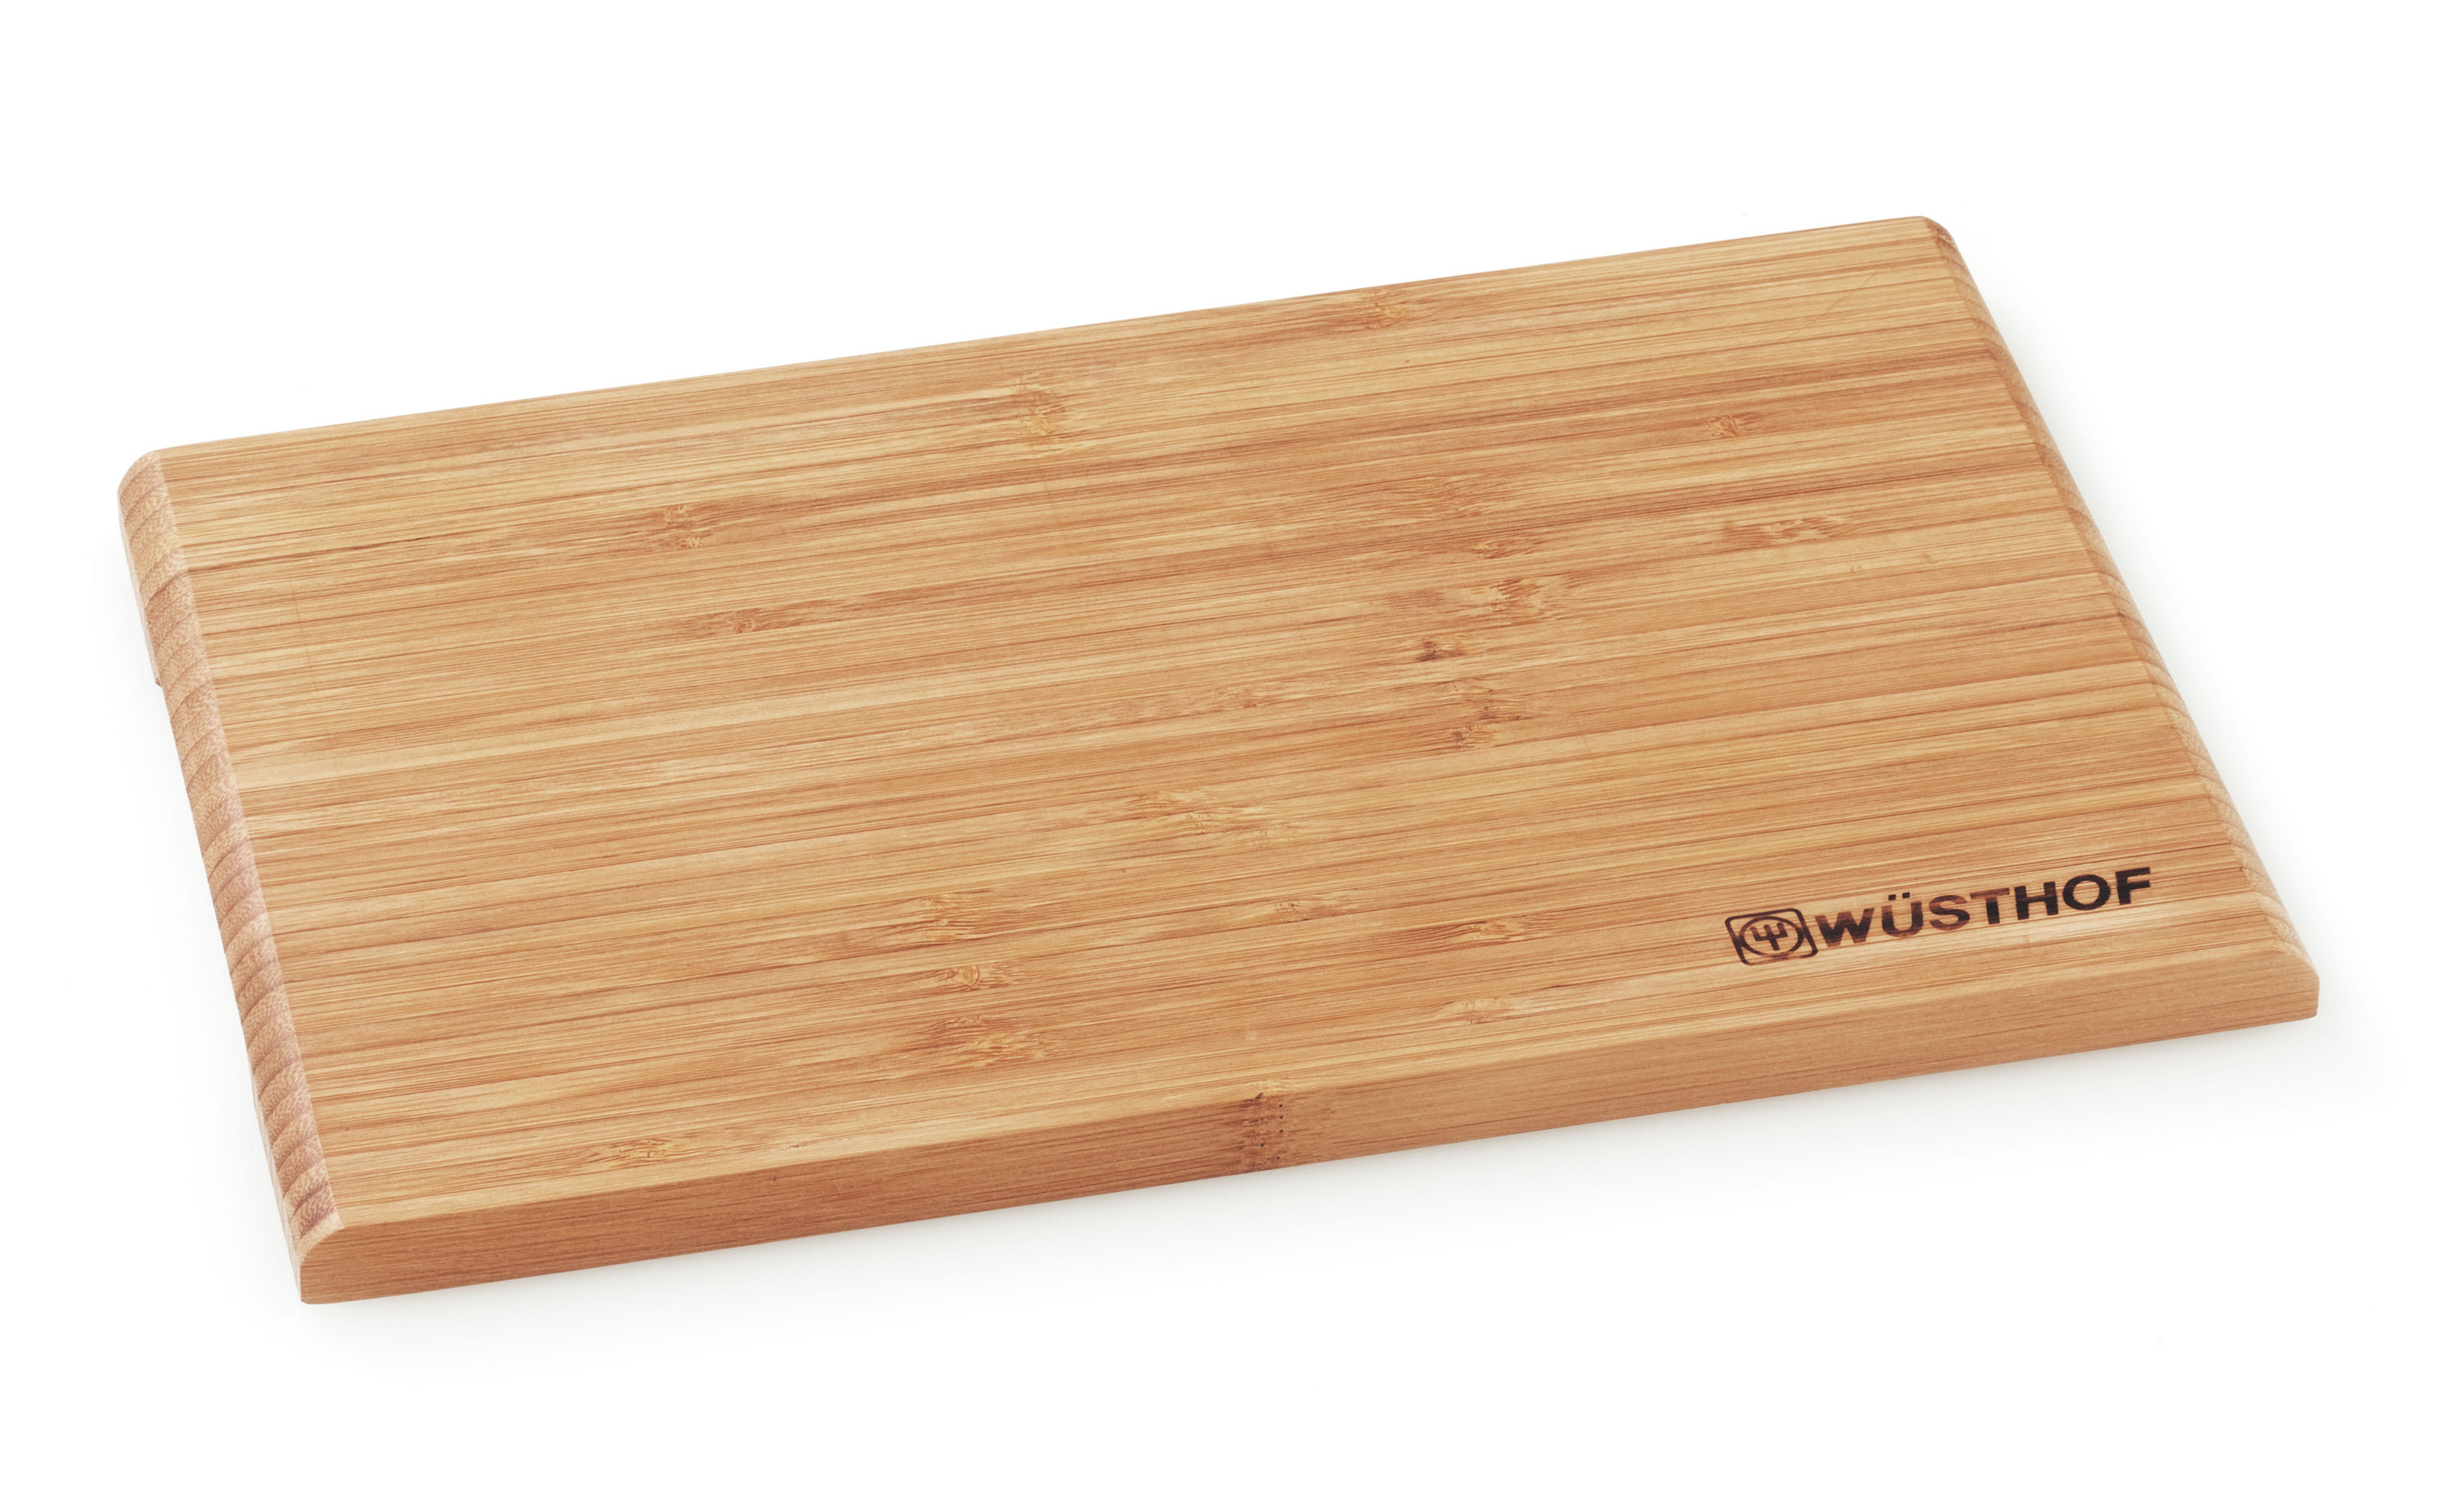 Wusthof Bamboo Utility Board 12 5x8 Quot Cutlery And More